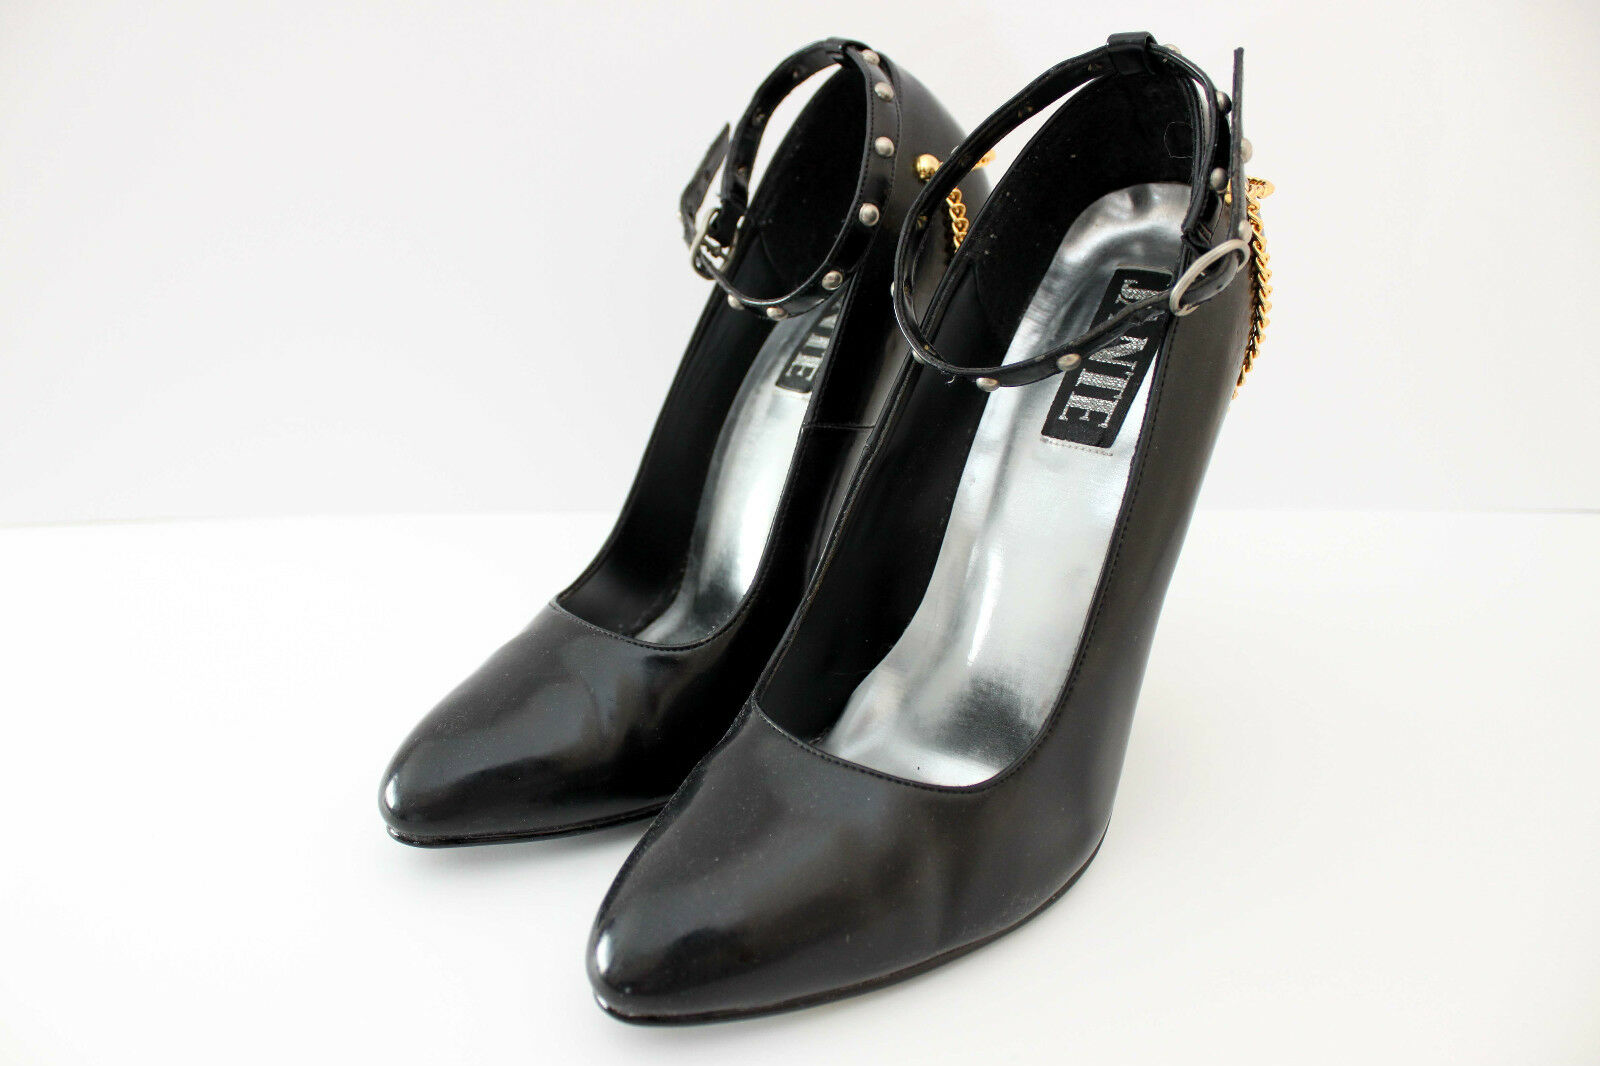 AUTHENTIC AUTHENTIC AUTHENTIC JANTE 115 schwarz PATENT W METAL CHAIN ANKLE STRAP HEELS Größe 41 672253